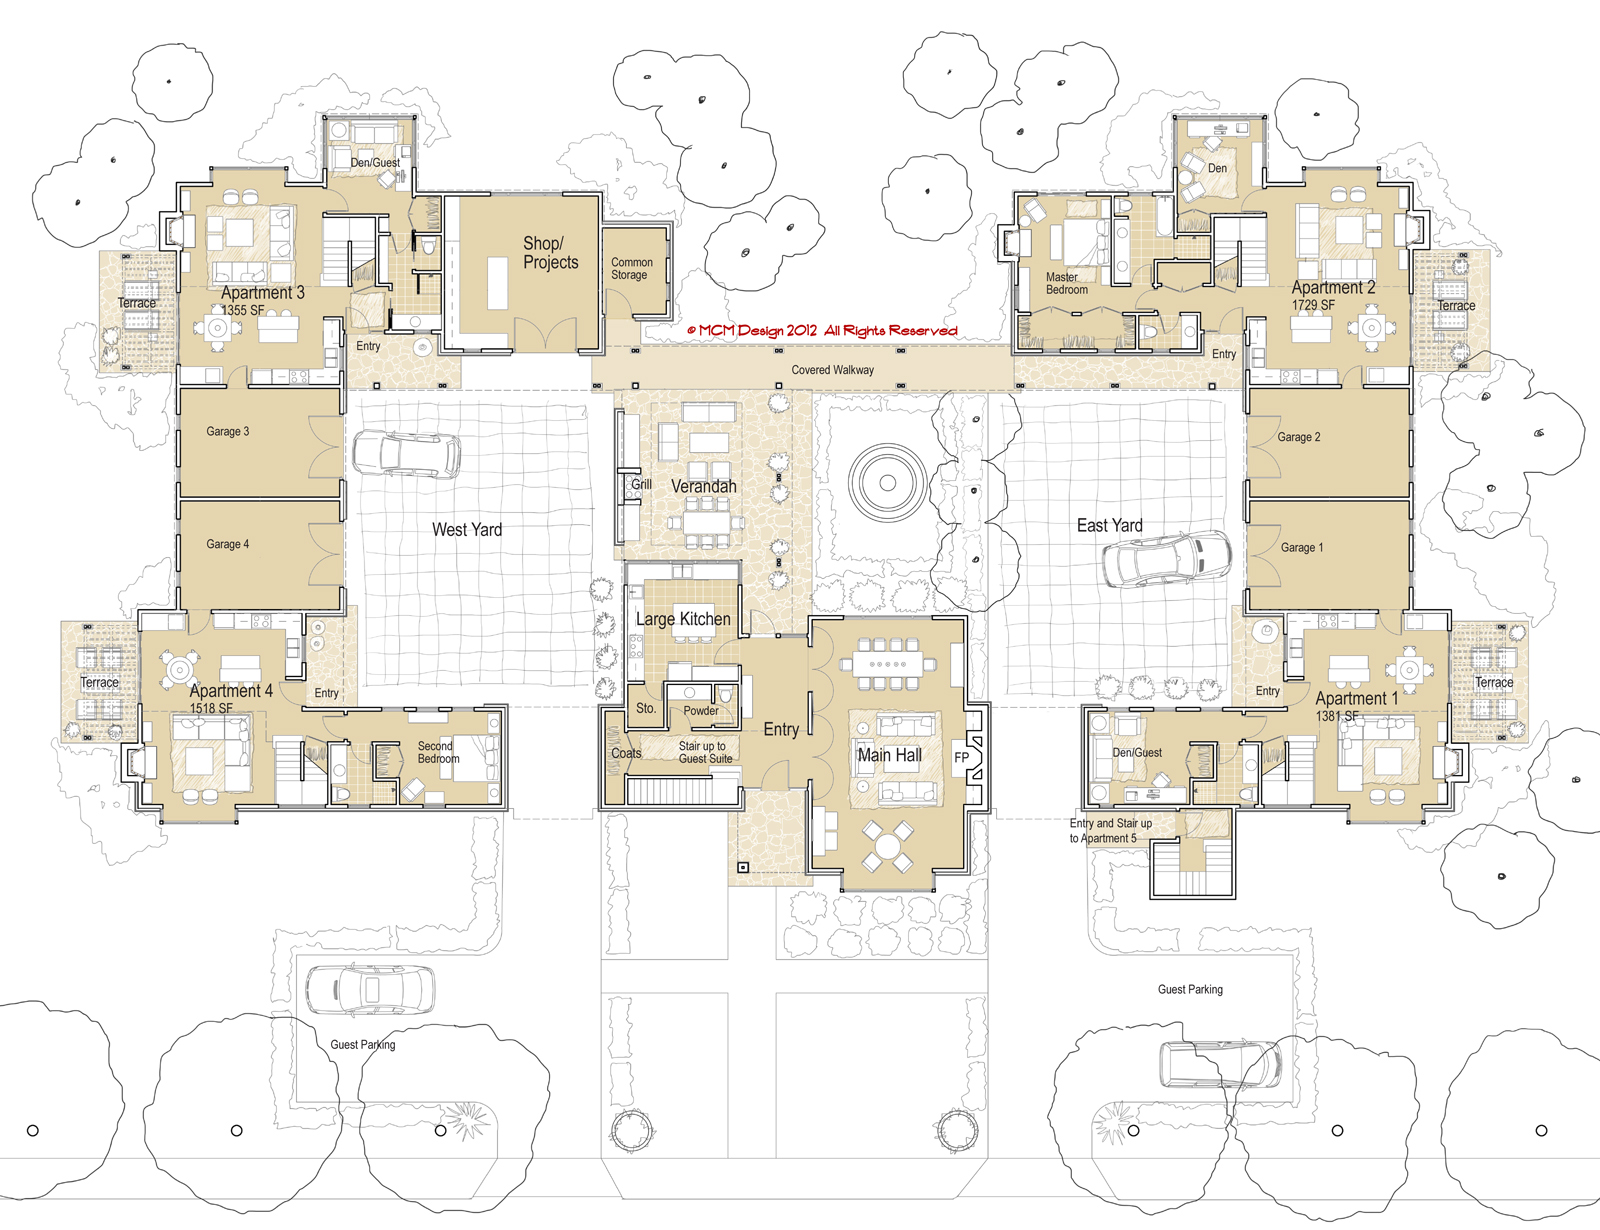 Townhouse Blueprints Mcm Design Co Housing Manor Plan